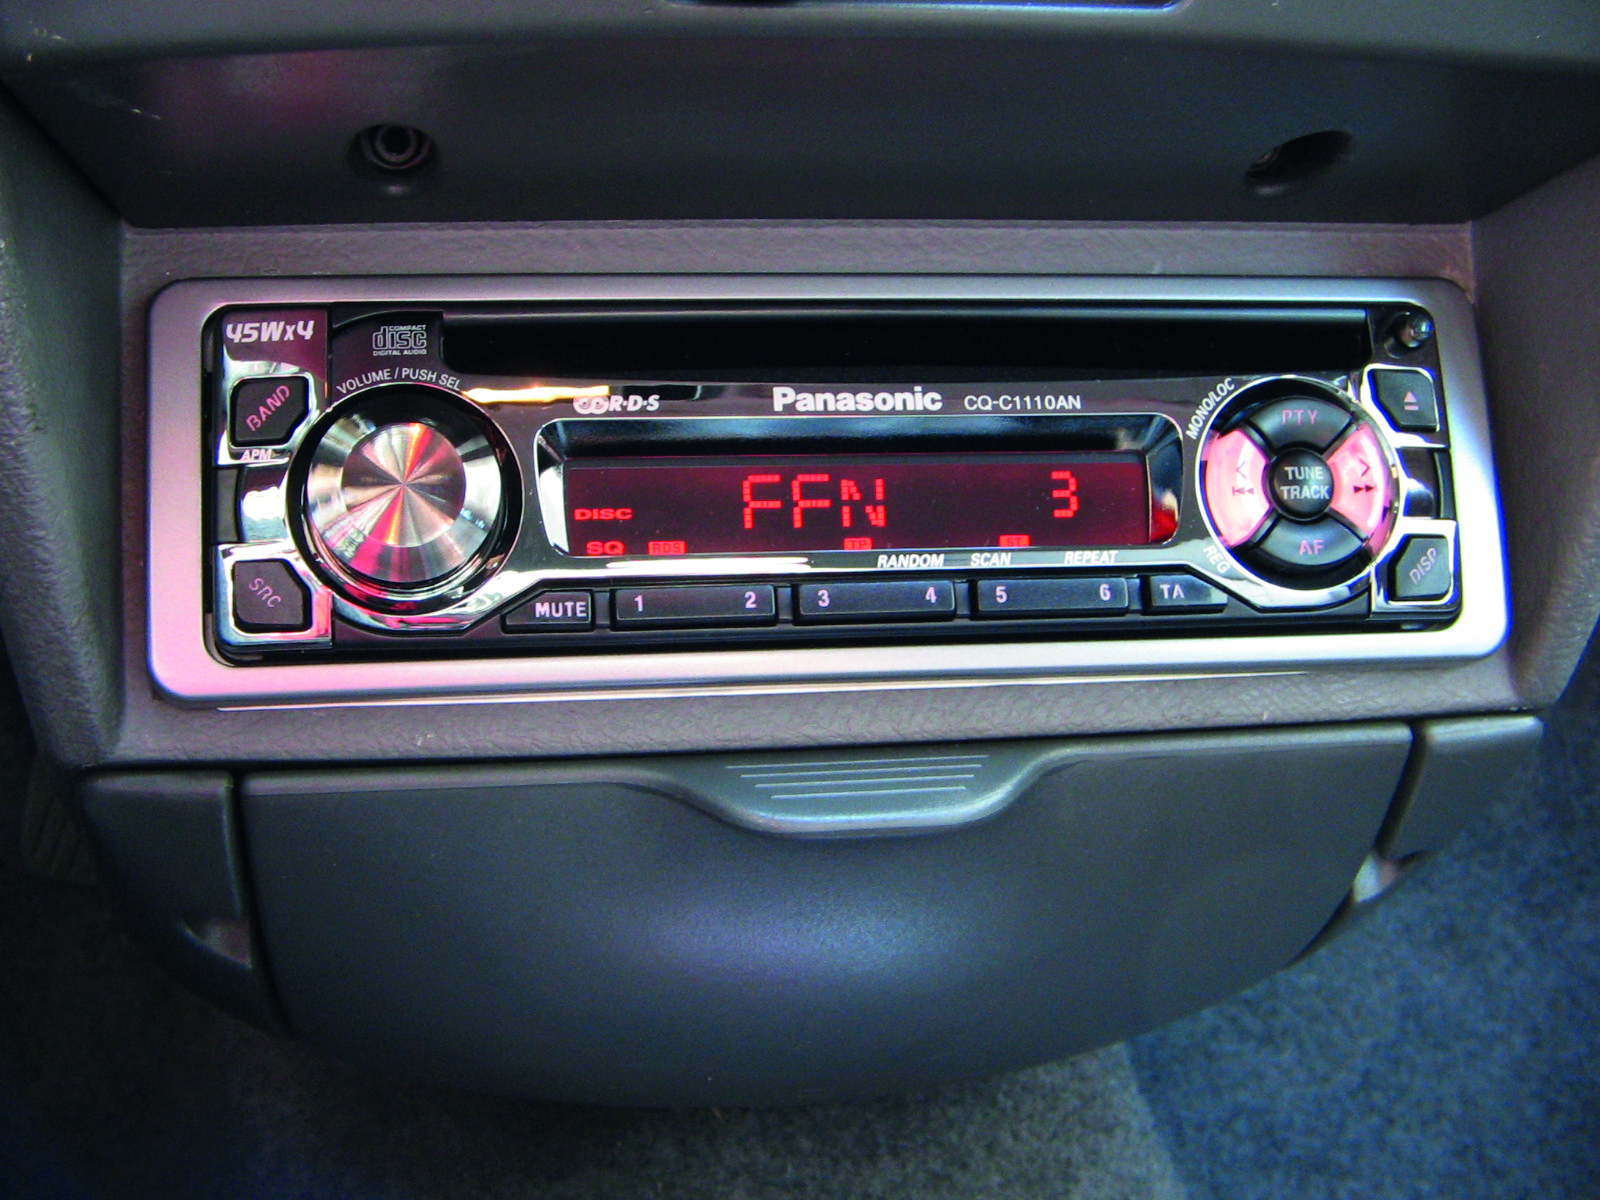 A classic CD/stereo head unit, removable to deter enterprising thieves